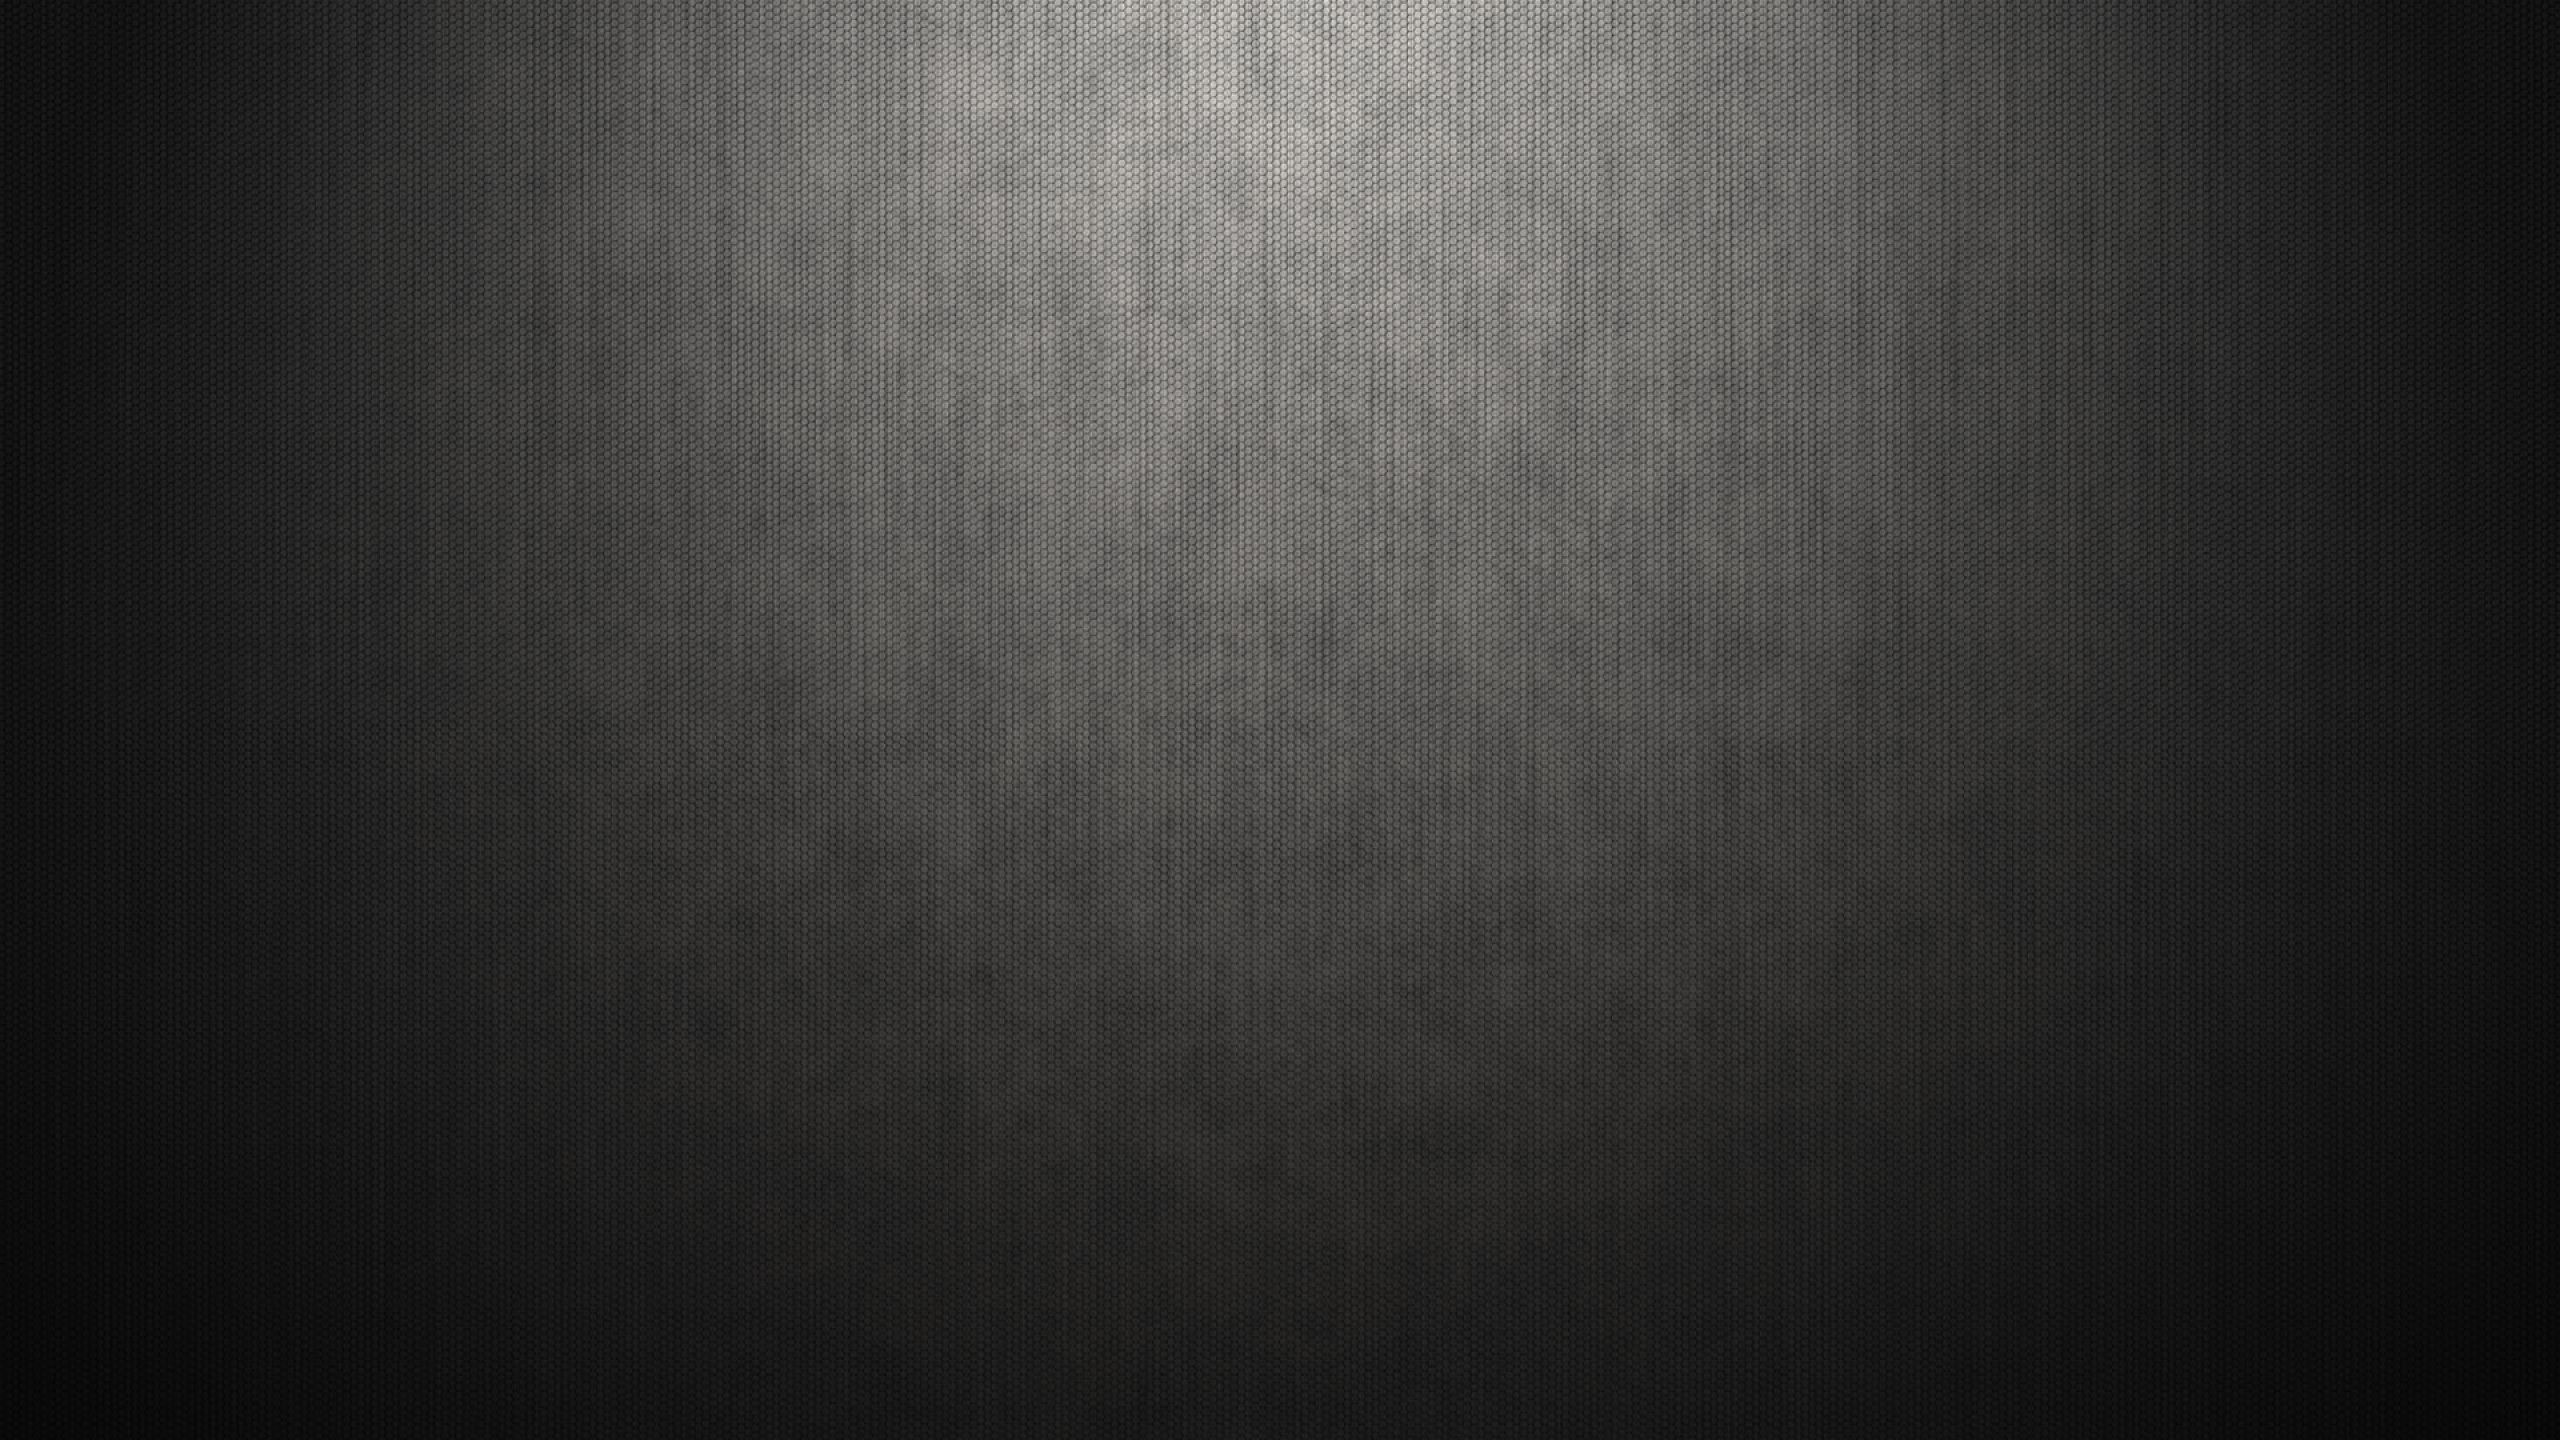 2560x1440 Wallpaper Gray Black Shadow Surface Line Grey